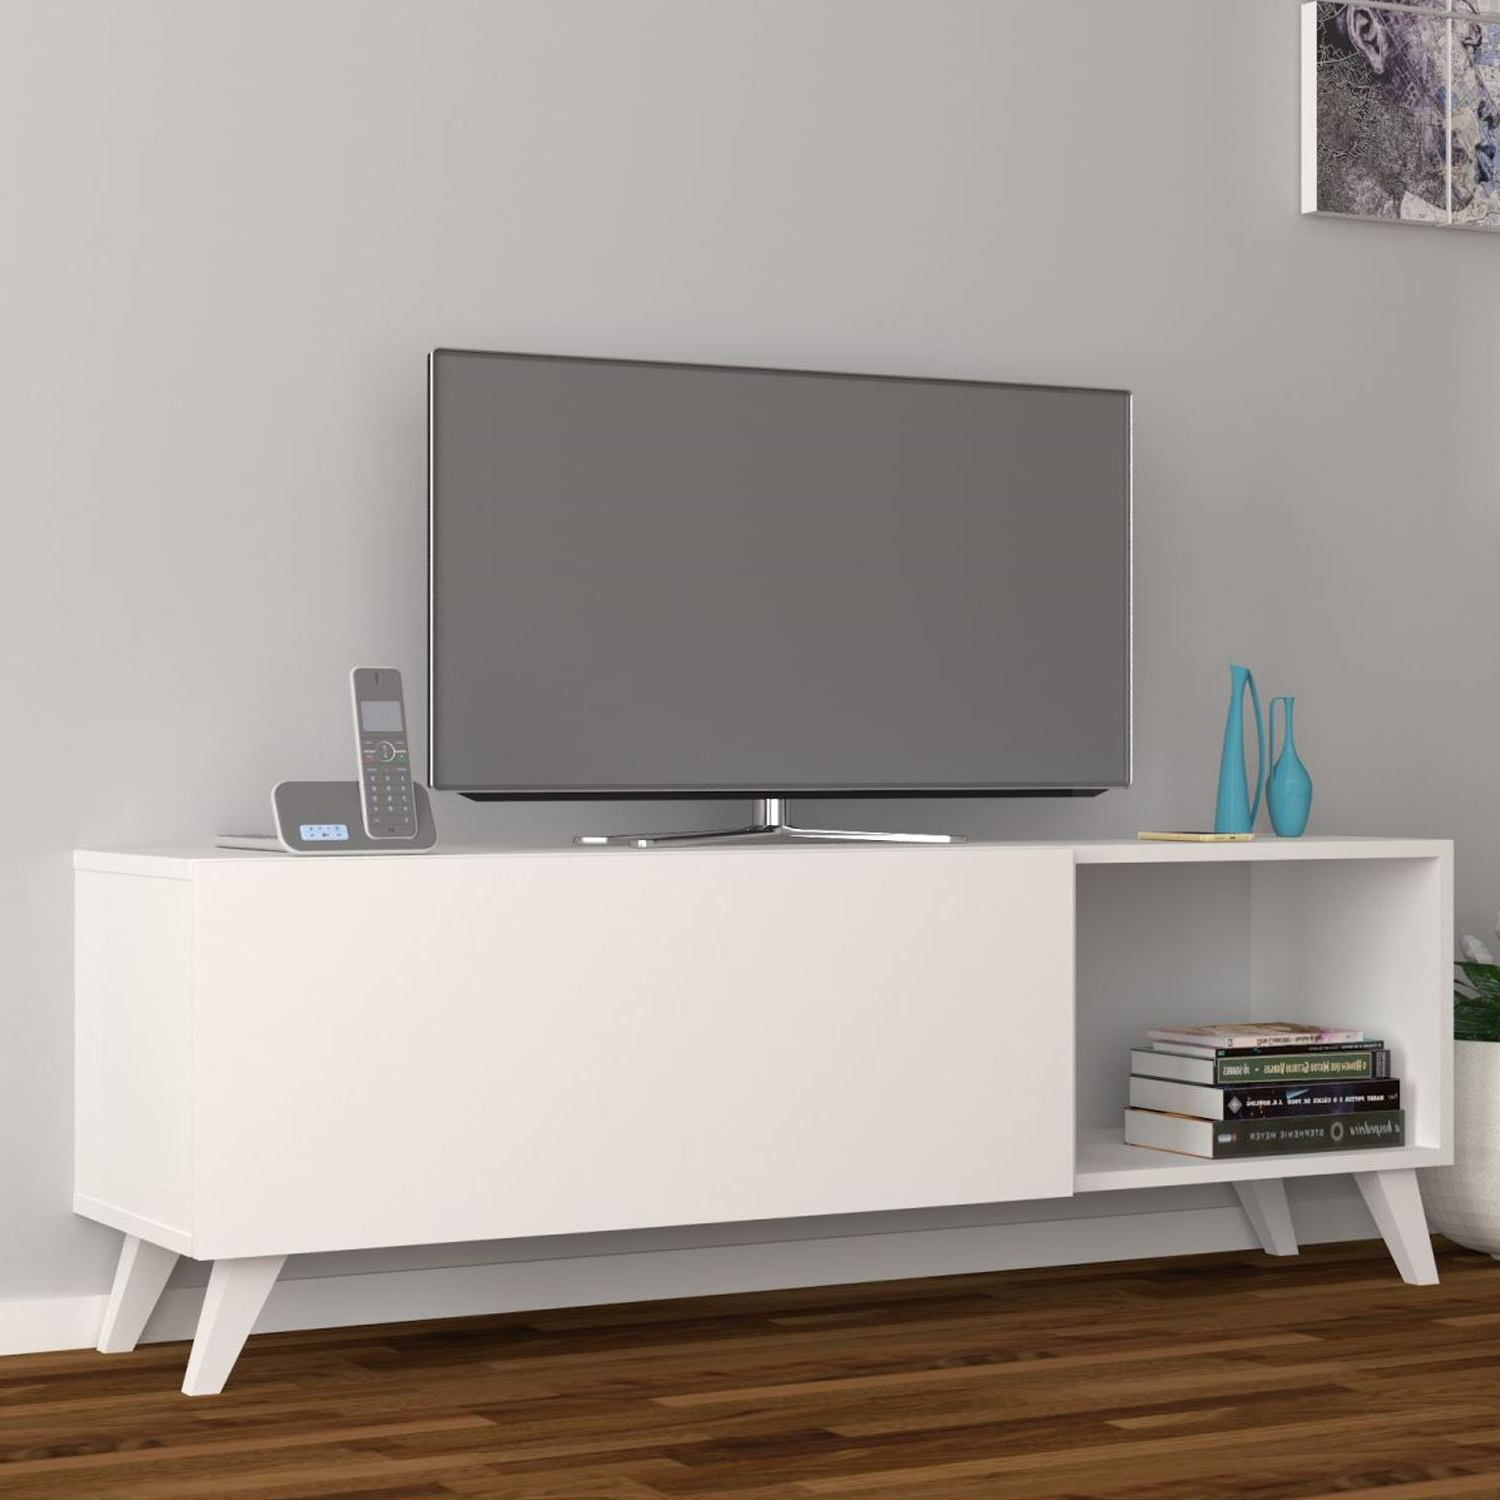 Dmodül Smart Tv Ünitesi 140 Cm | Dekorazon In Ducar 74 Inch Tv Stands (View 7 of 20)